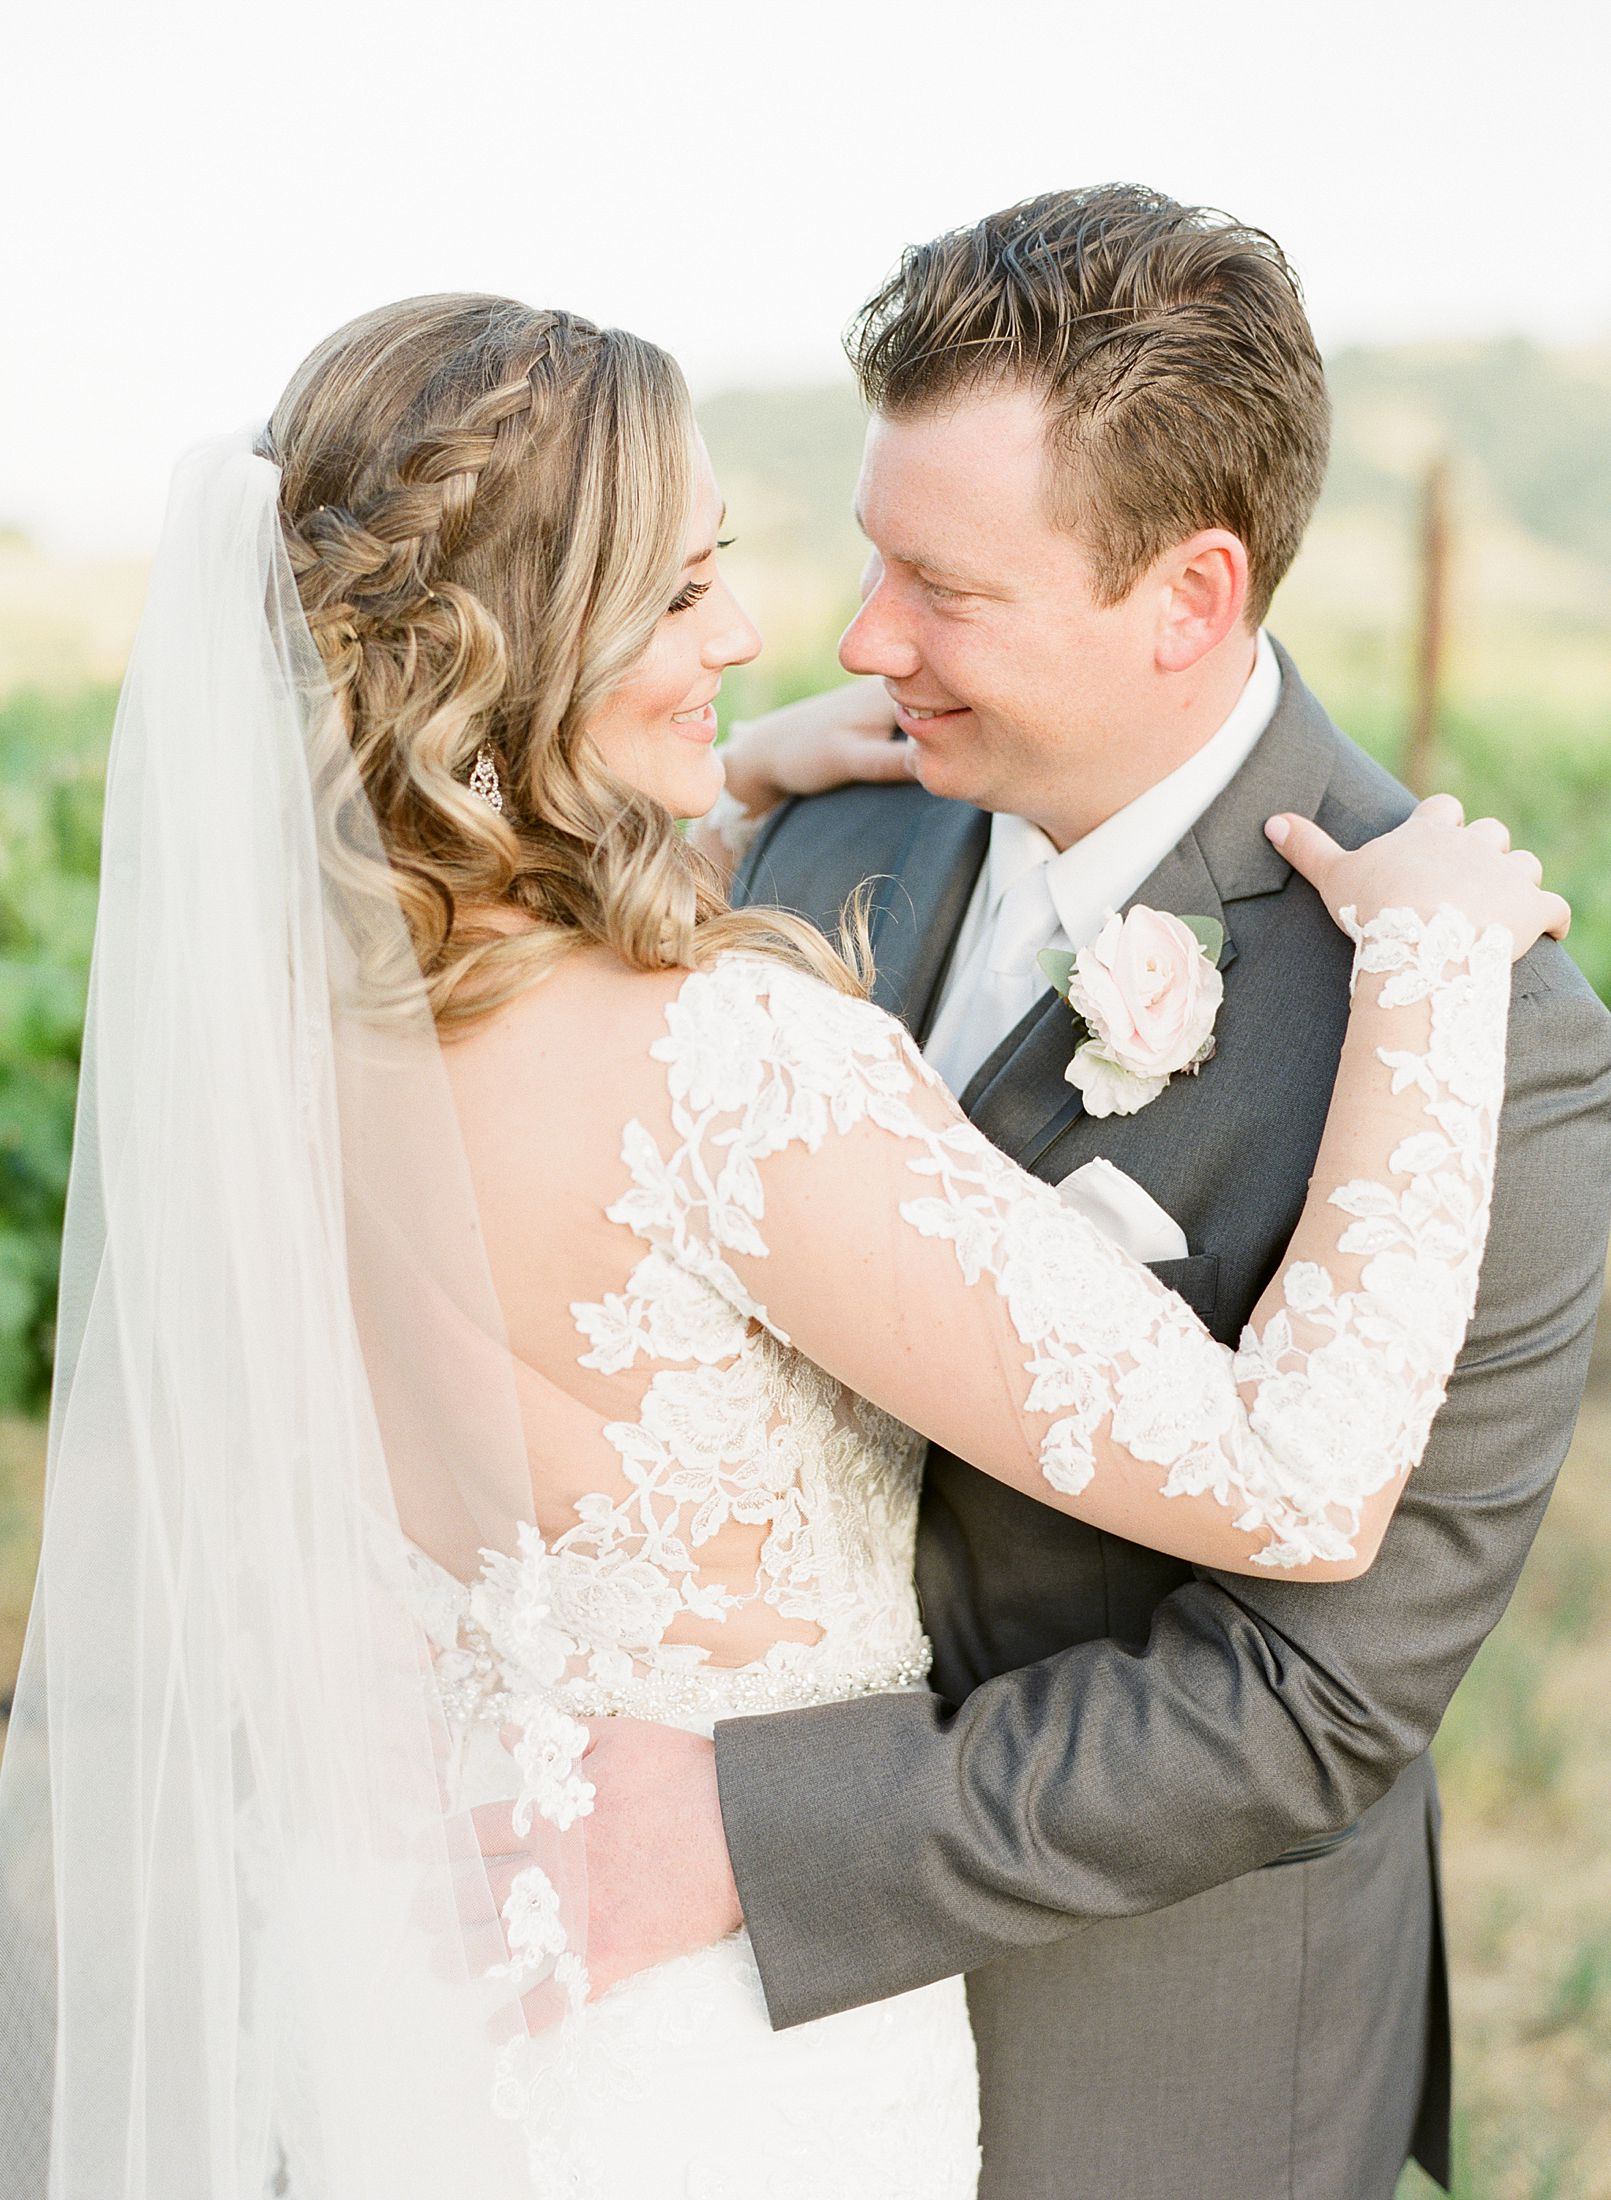 Clos LaChance Winery Wedding - Ashley Baumgartner - Kat & Kurt - Morgan Hill Wedding - Winery Wedding - Bay Area Photographer - Sacramento Wedding Photographer_0066.jpg